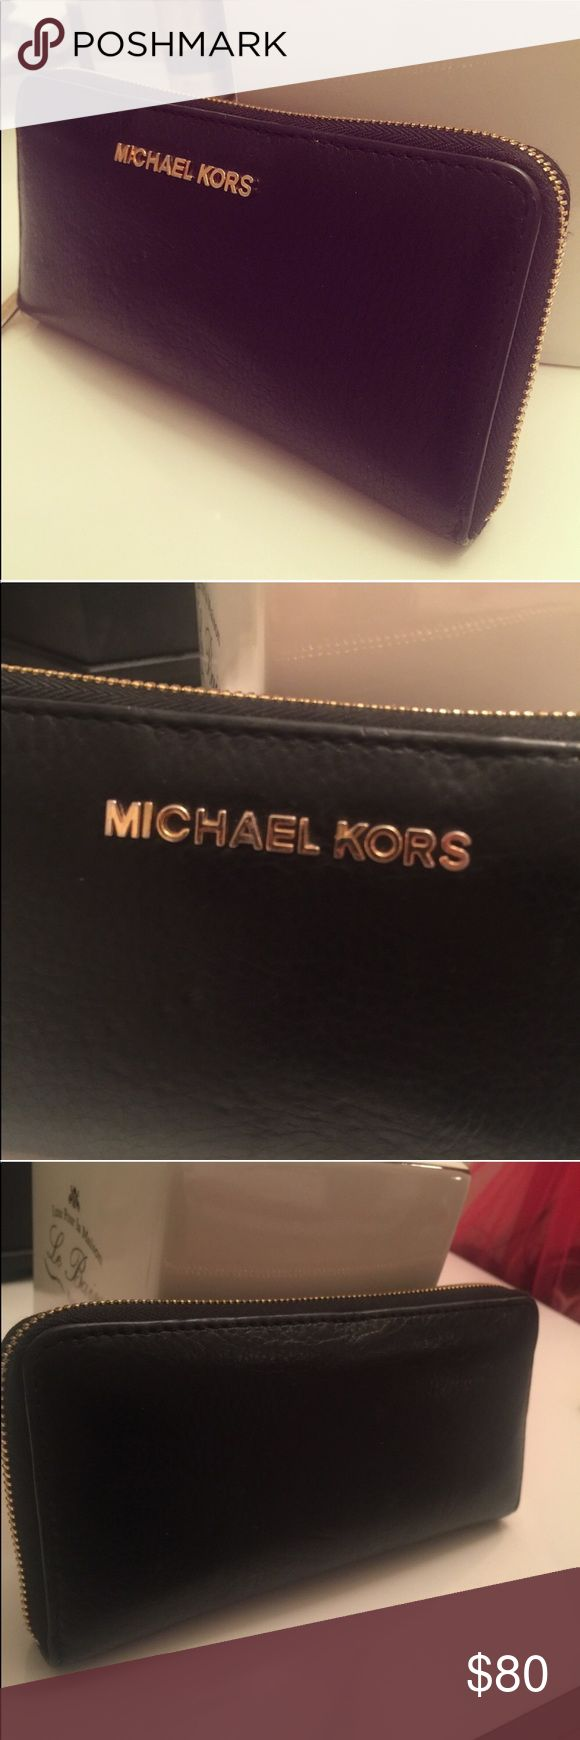 Michael Kors Wallet Like new! Black wallet with gold zipper. No damage at all. Michael Kors Bags Wallets